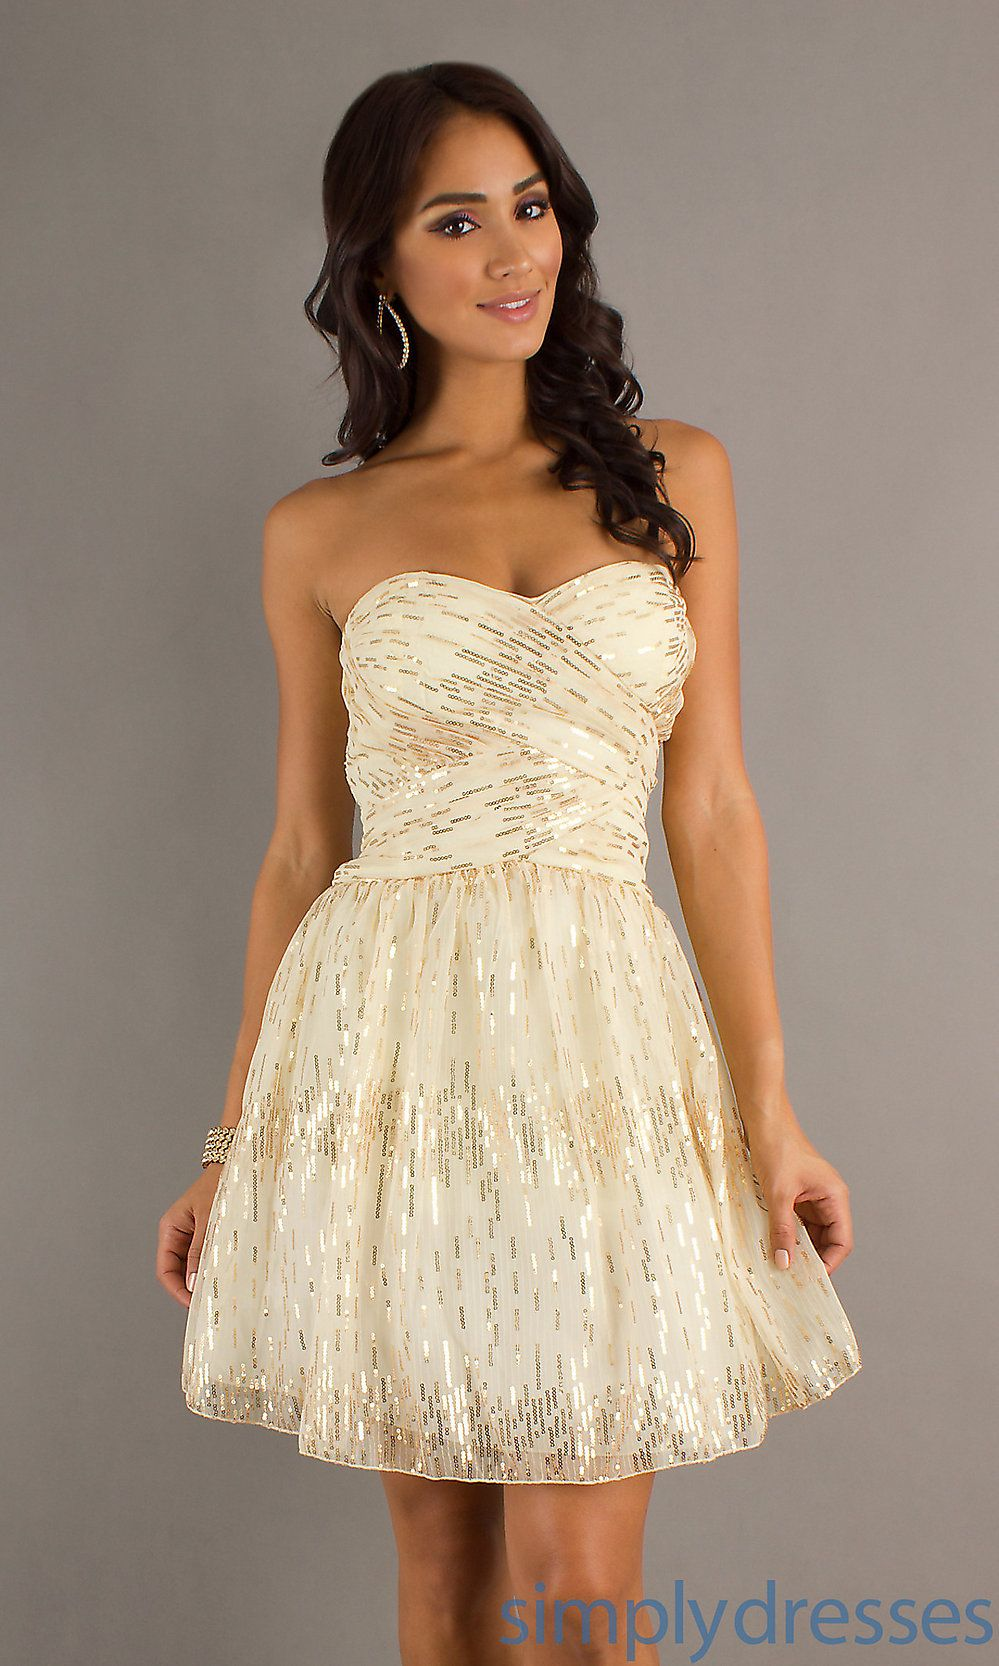 Champagnedresseswithsequines short strapless dress sequin